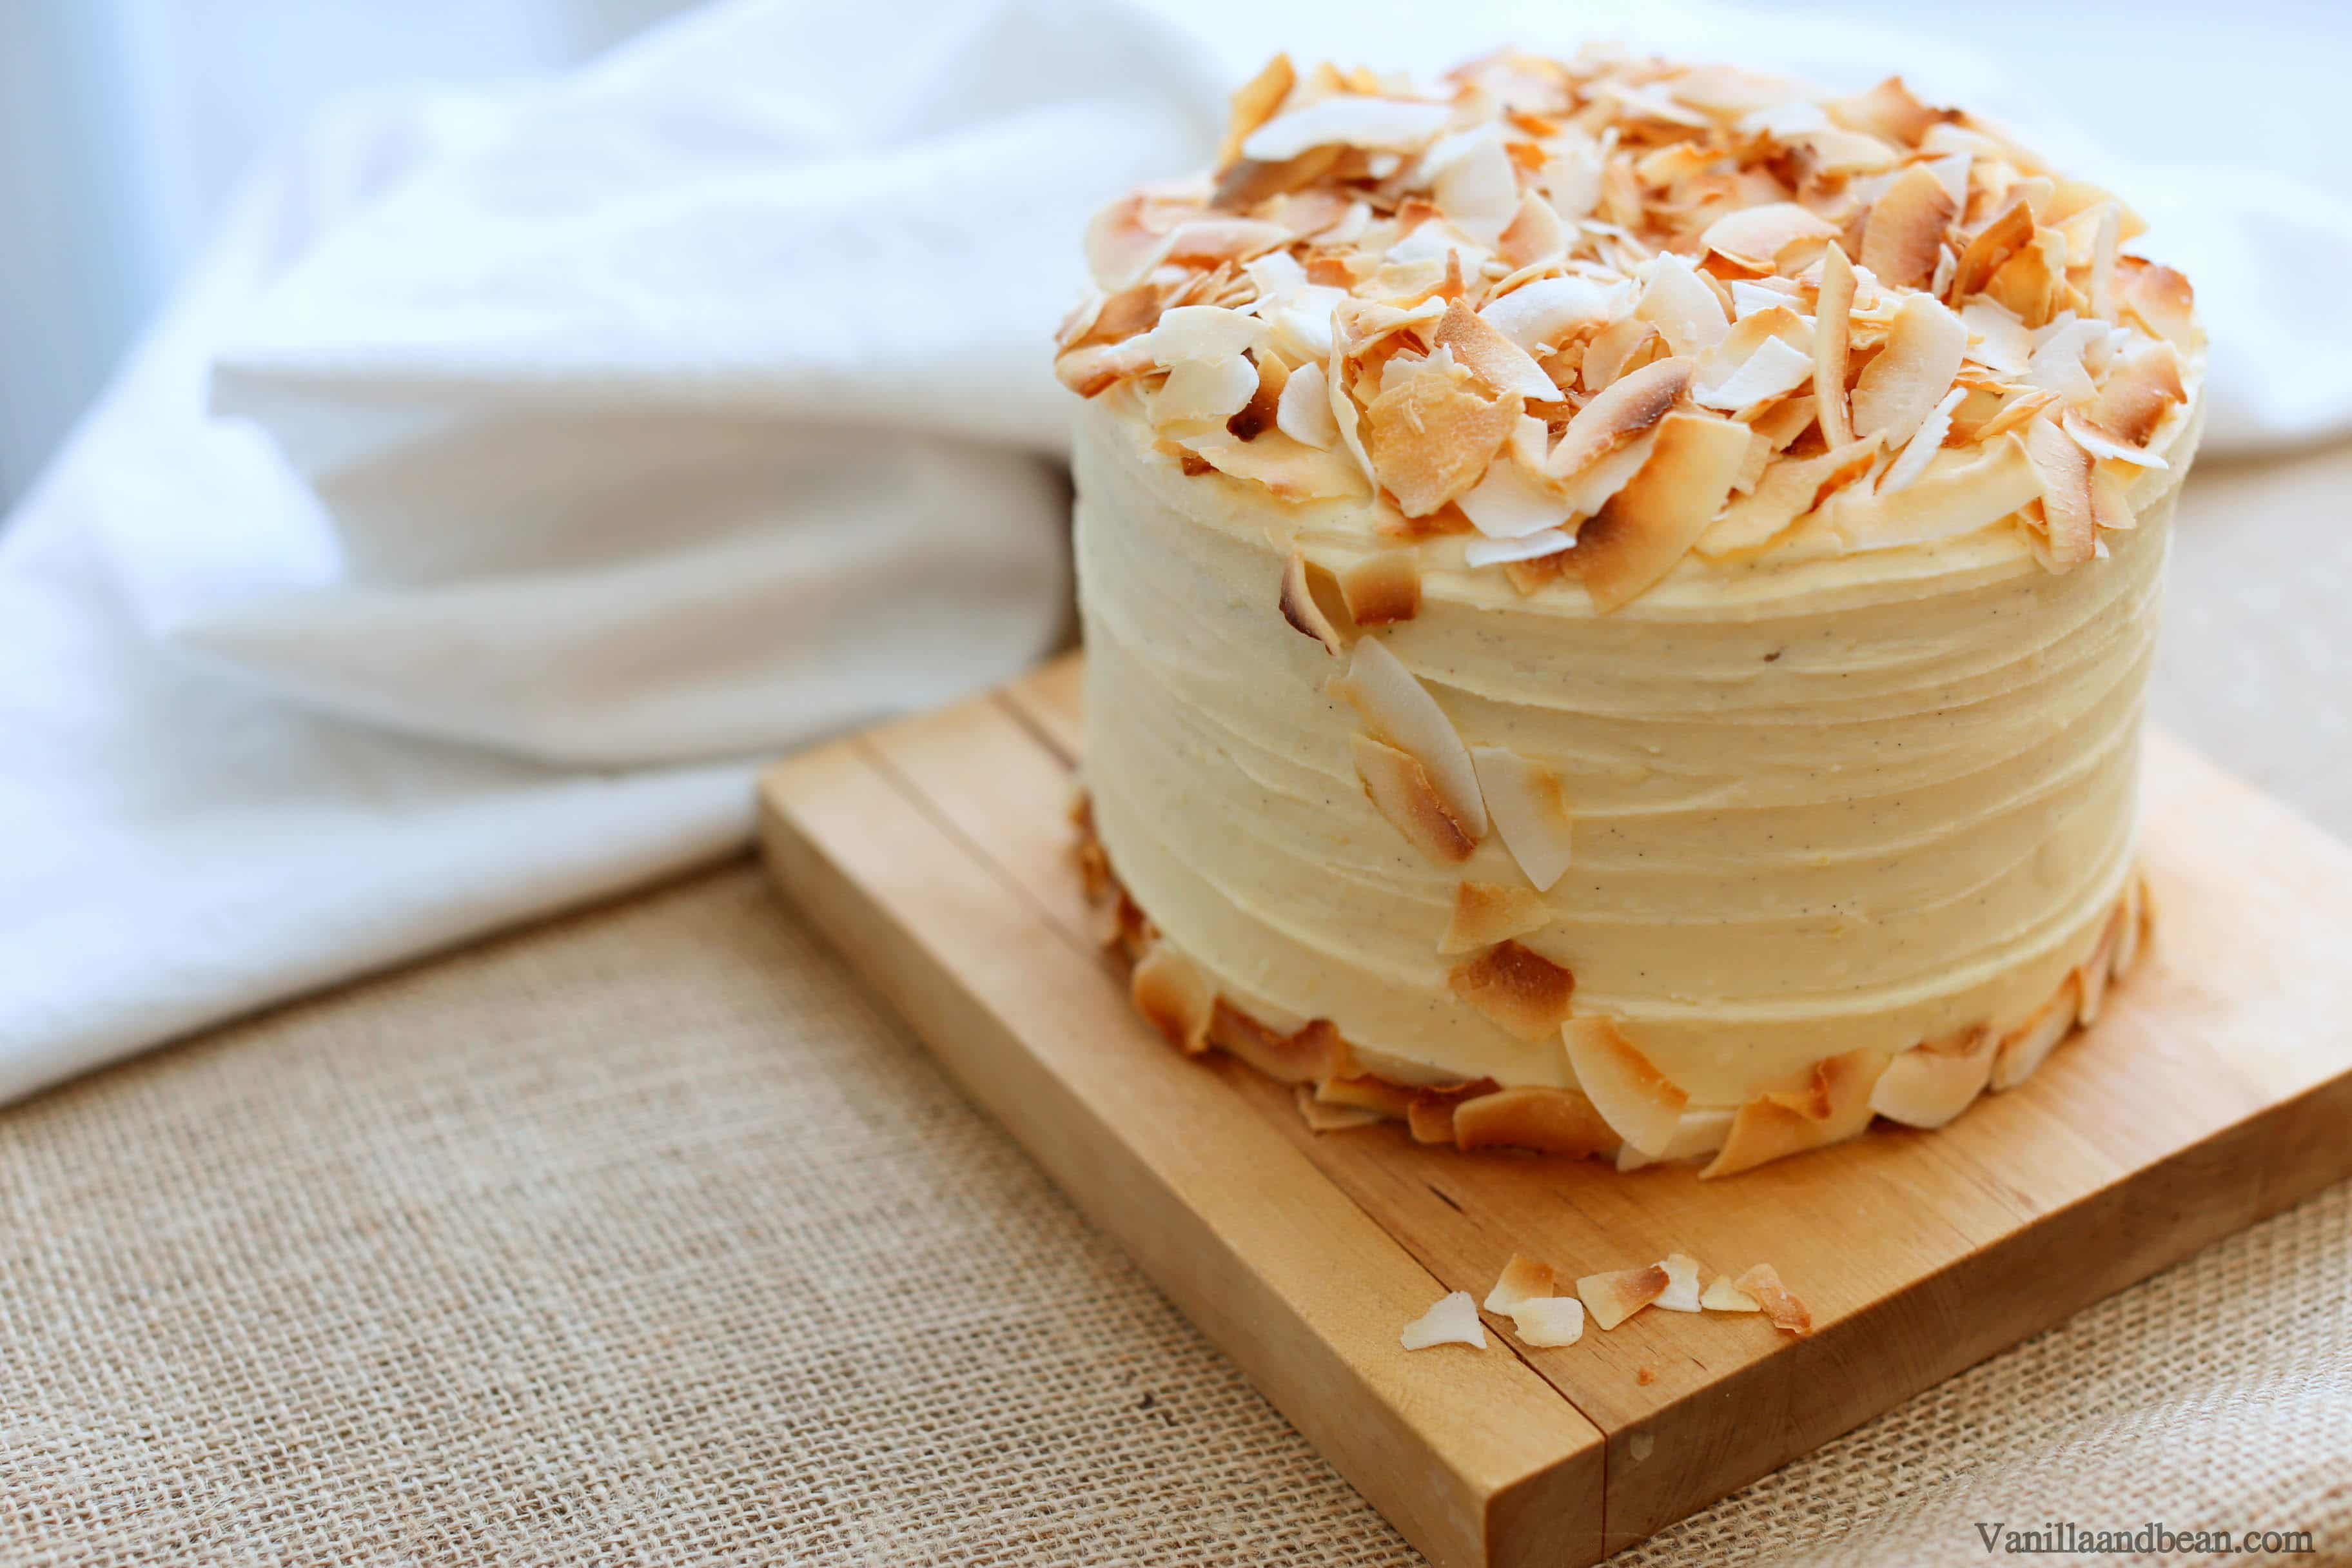 Hummingbird Cake topped with coconut flakes setting on a cake board.